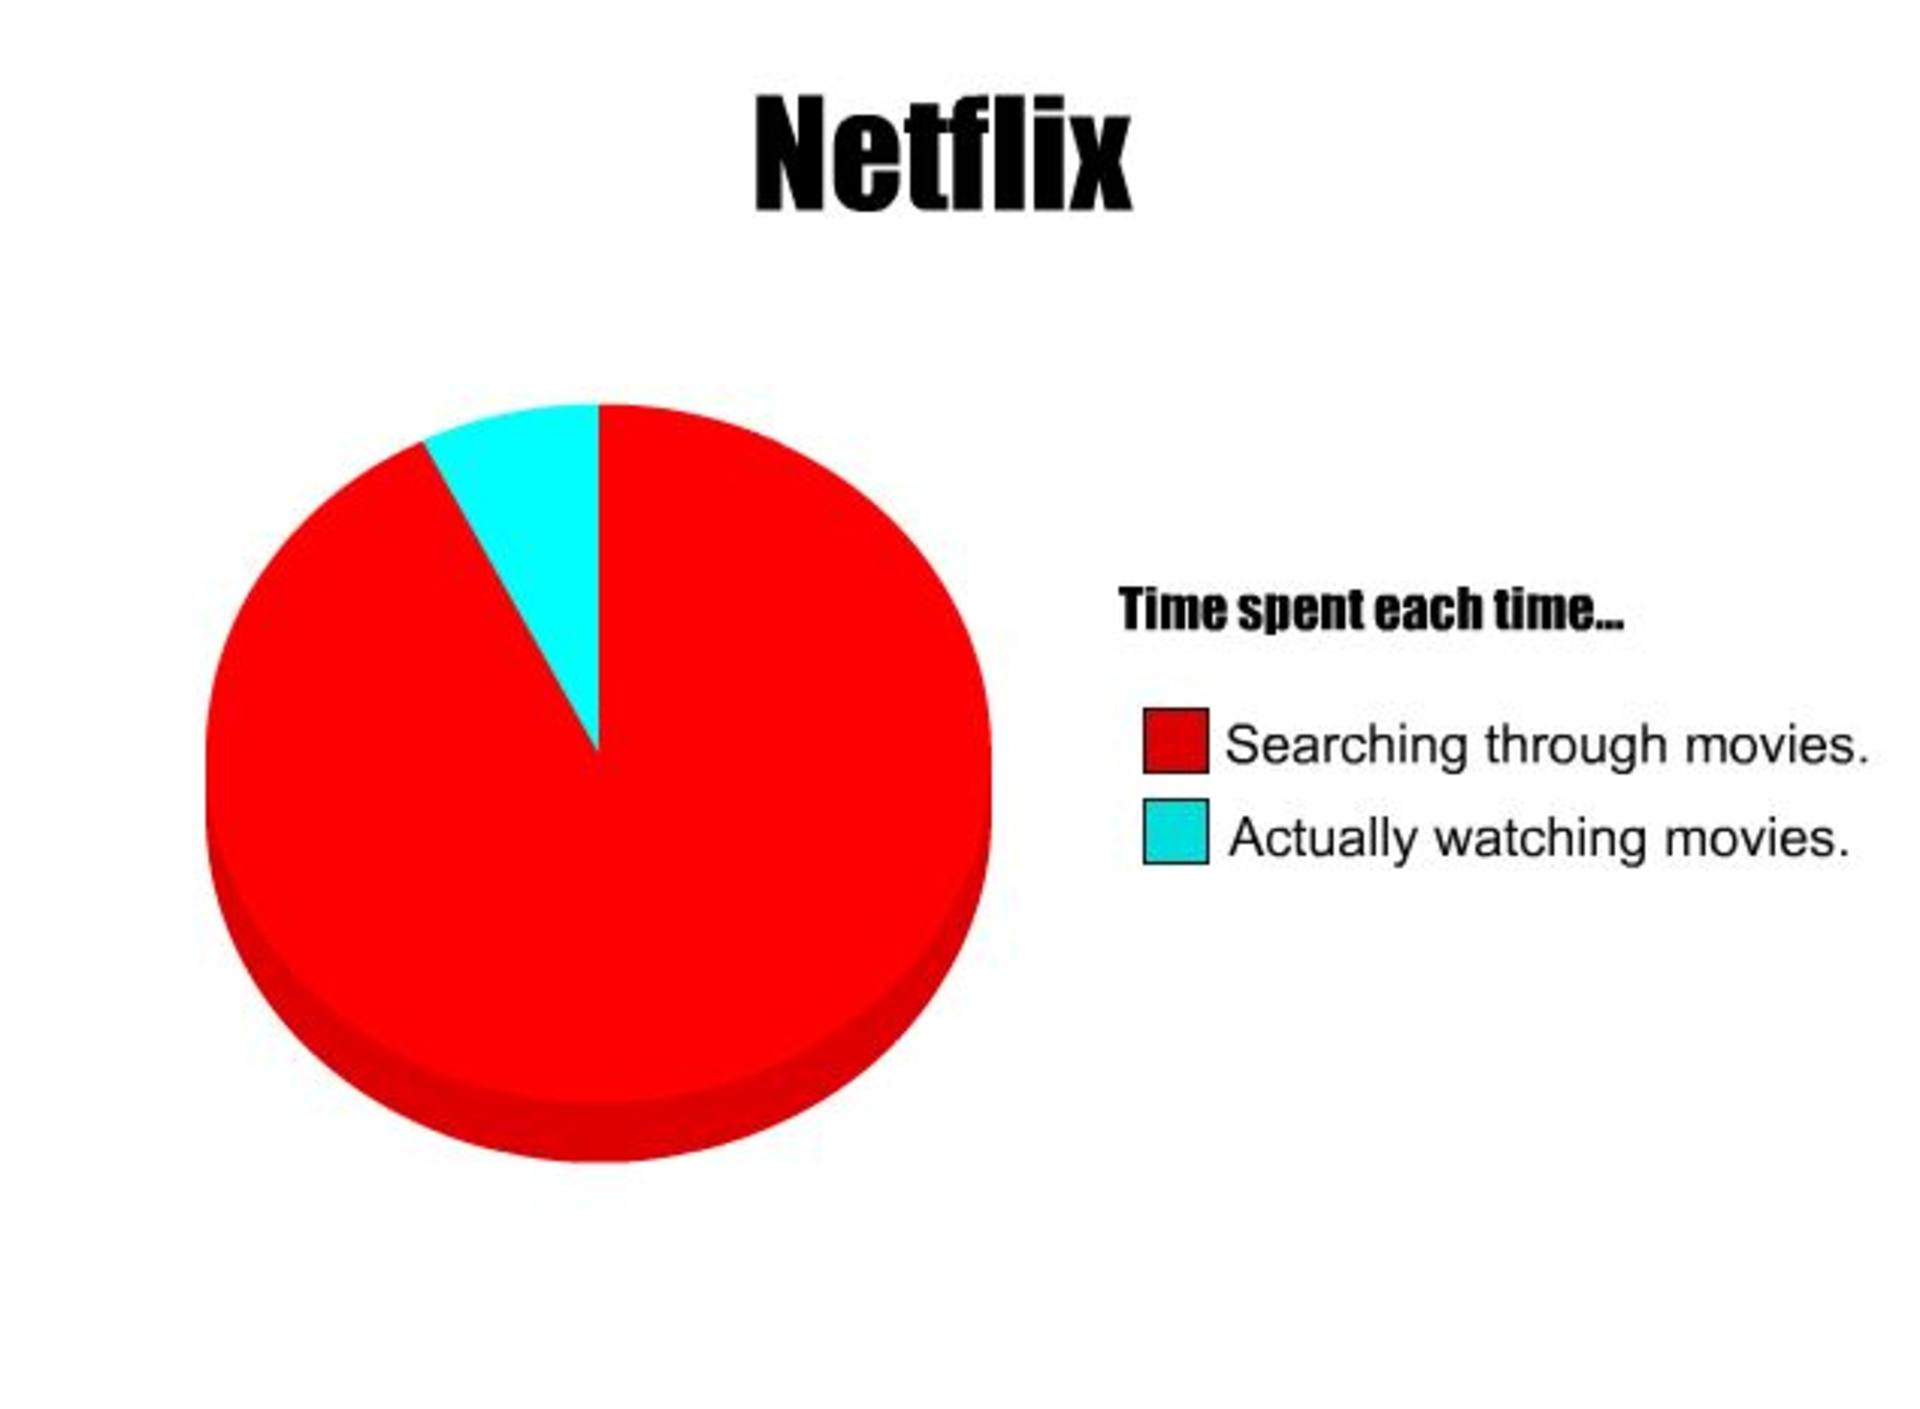 W & B - time-spent-on-netflix-pie-chart